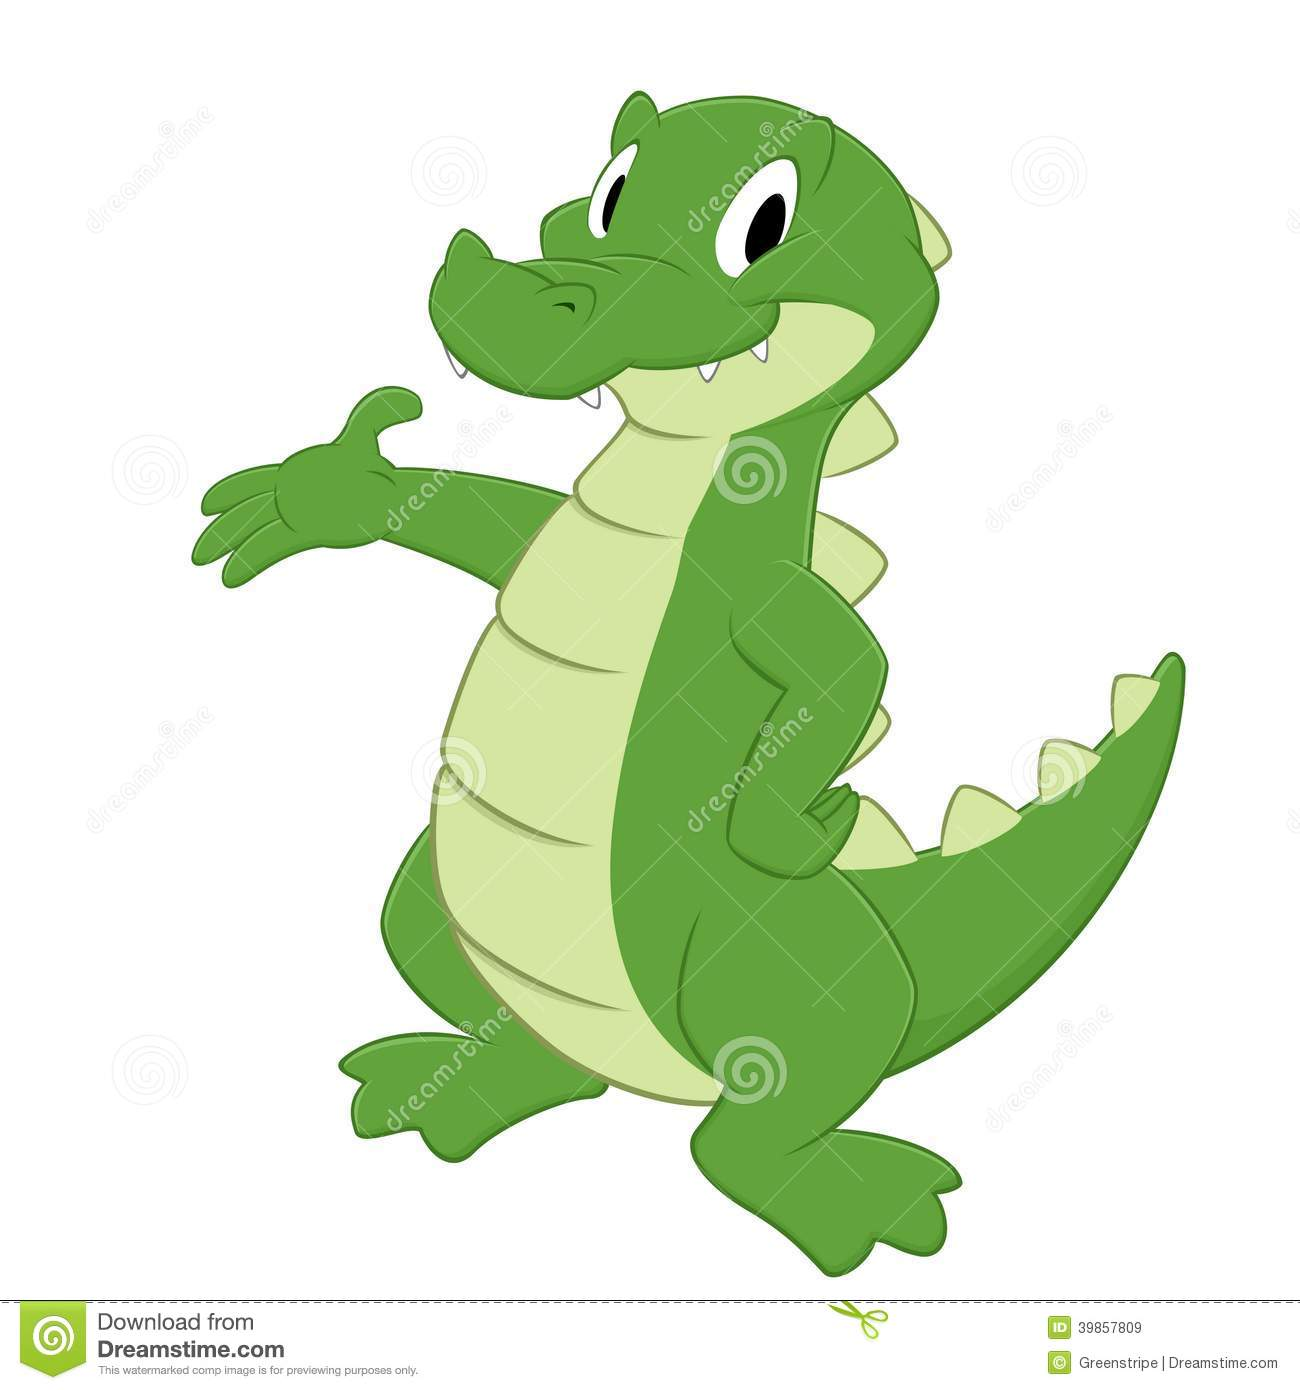 Cartoon crocodile. Isolated object for design element.